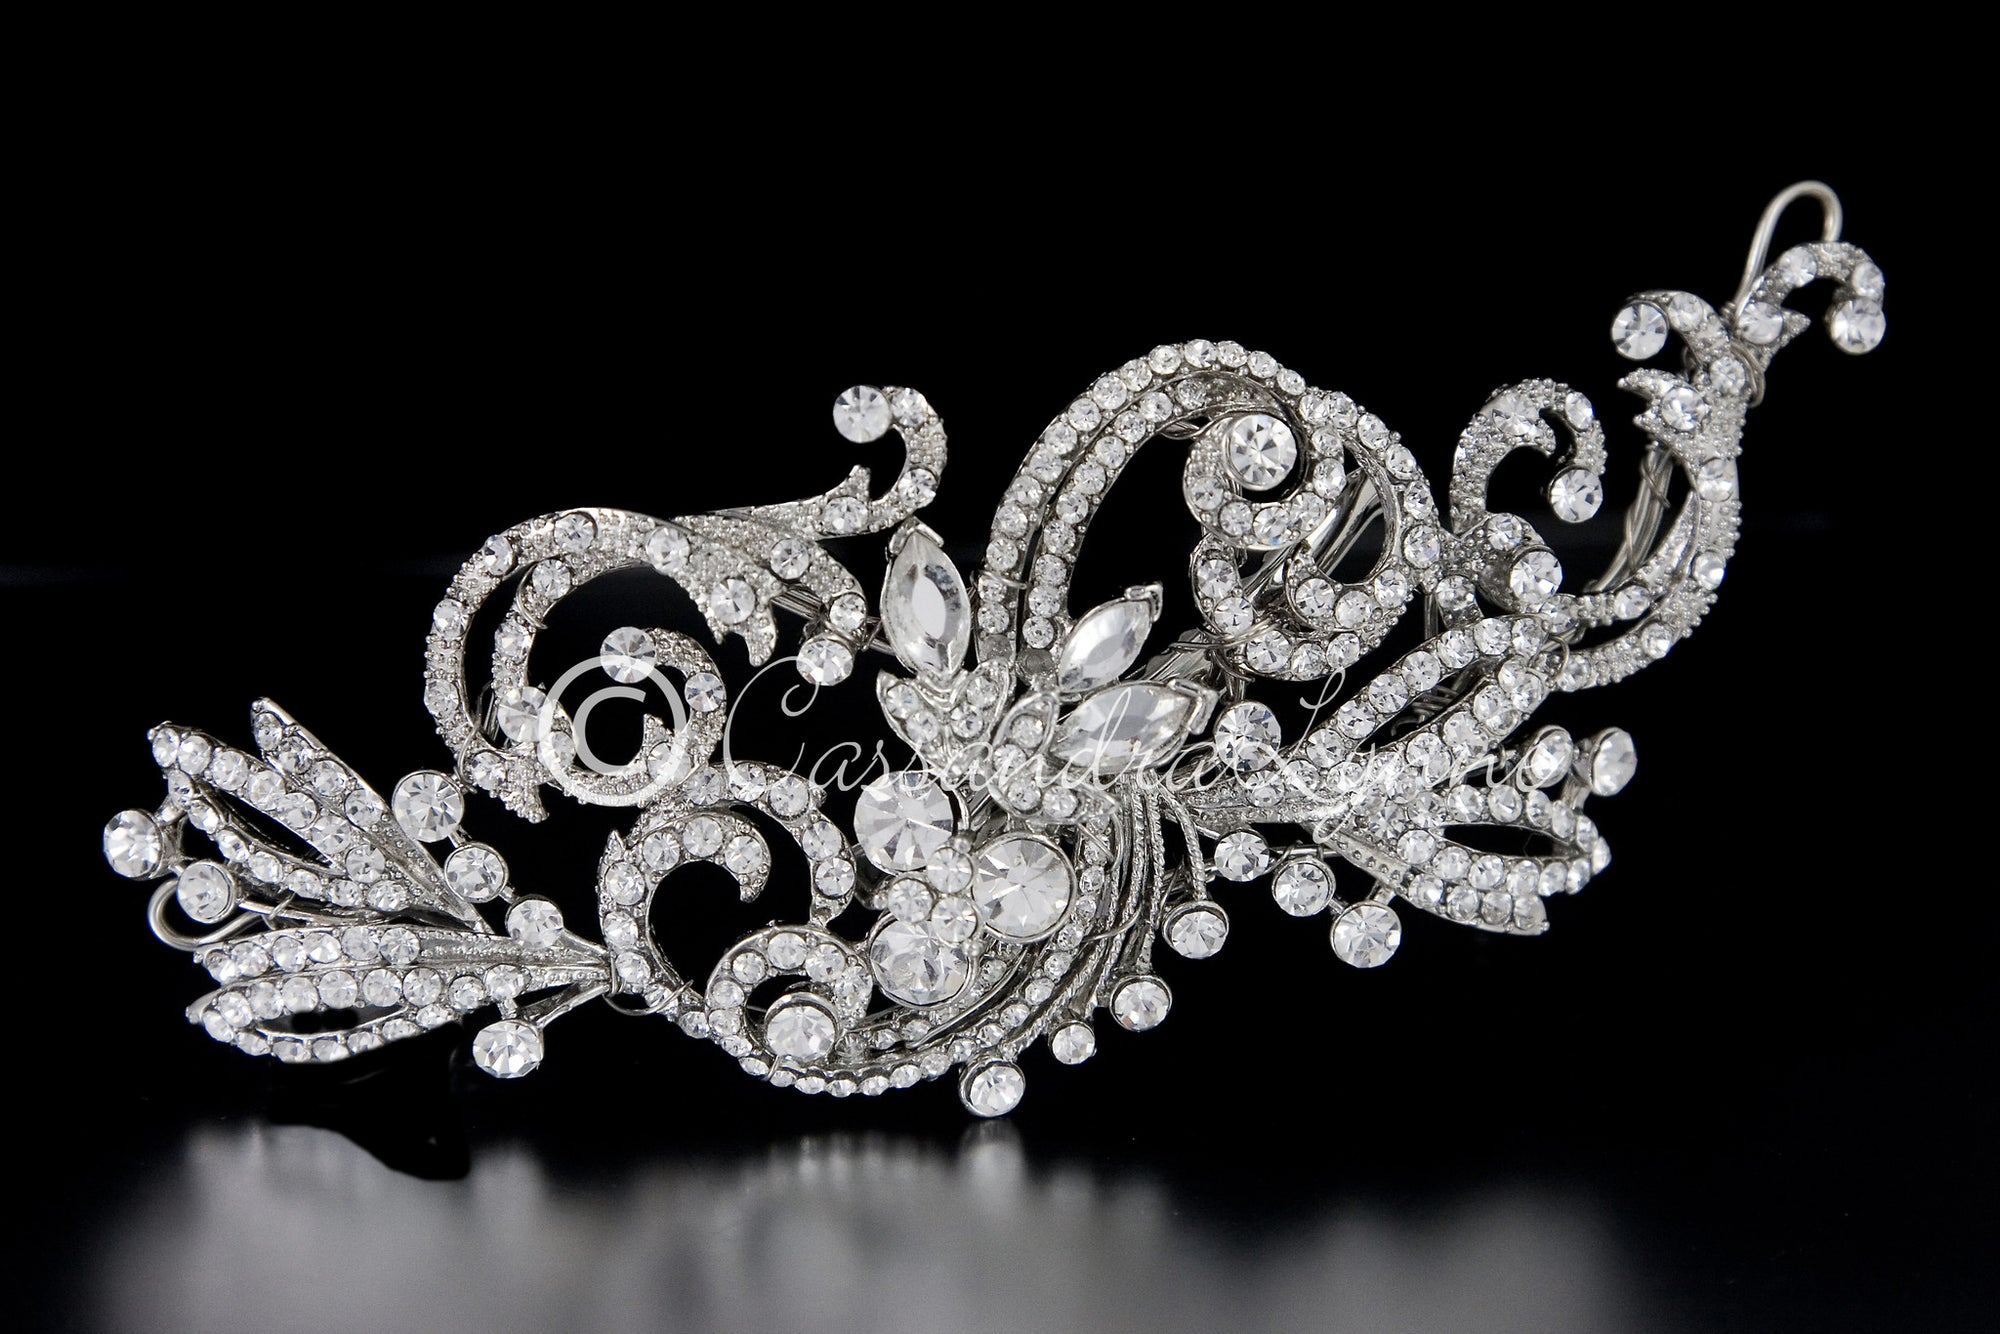 Rhodium Wedding Hair Clip of Scrolls and Marquise Jewels